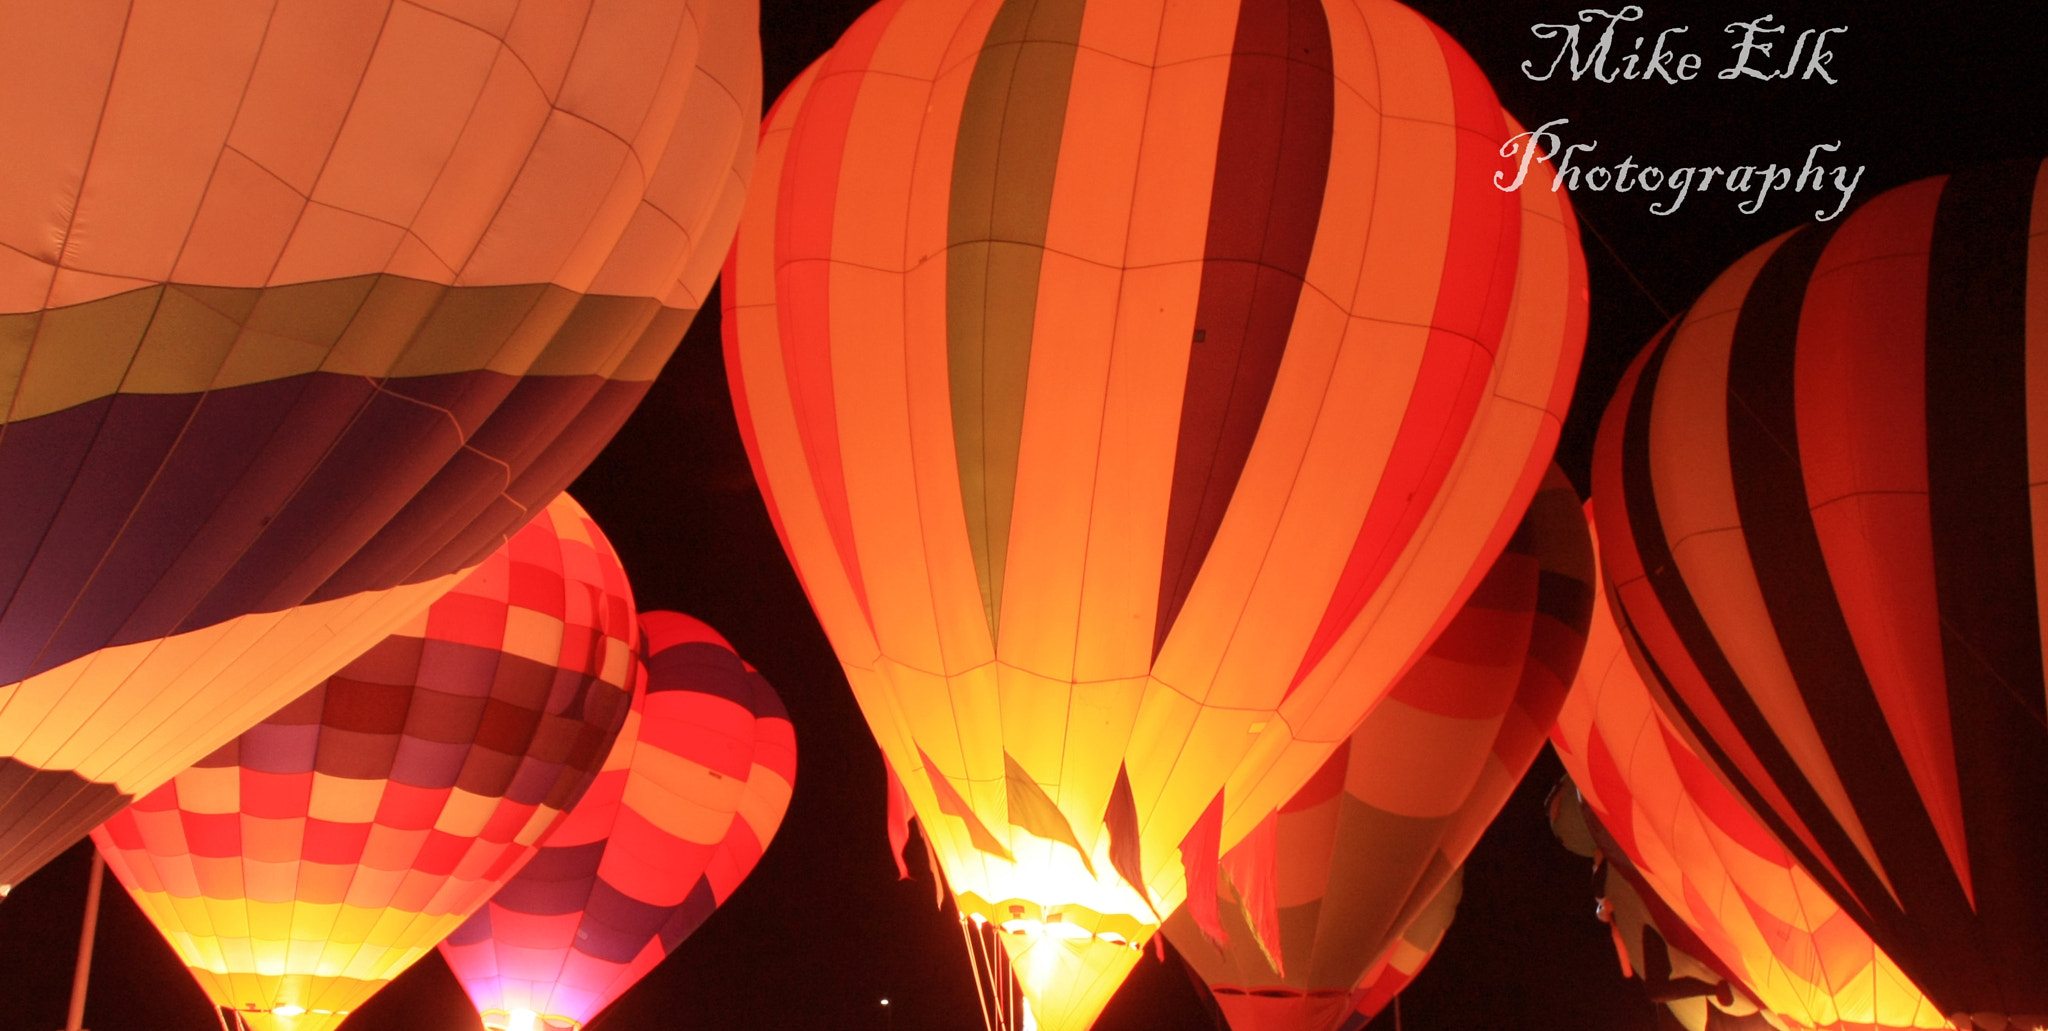 Photograph A night with Balloons by Mike Elk on 500px